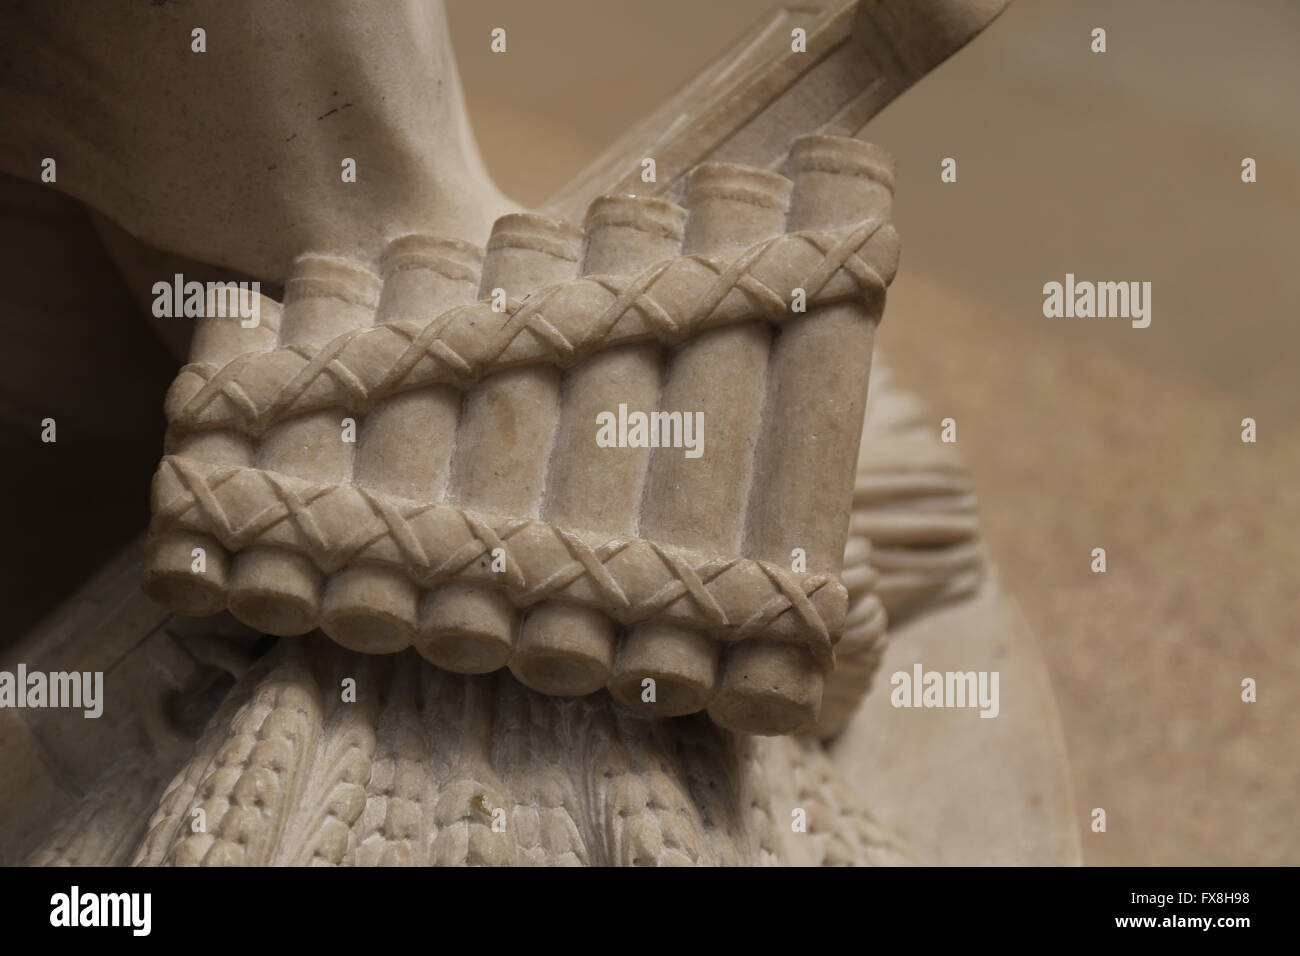 Classical times. Pan flute, musical instrument. Detail. Statue. Orsay Museum. France. - Stock Image